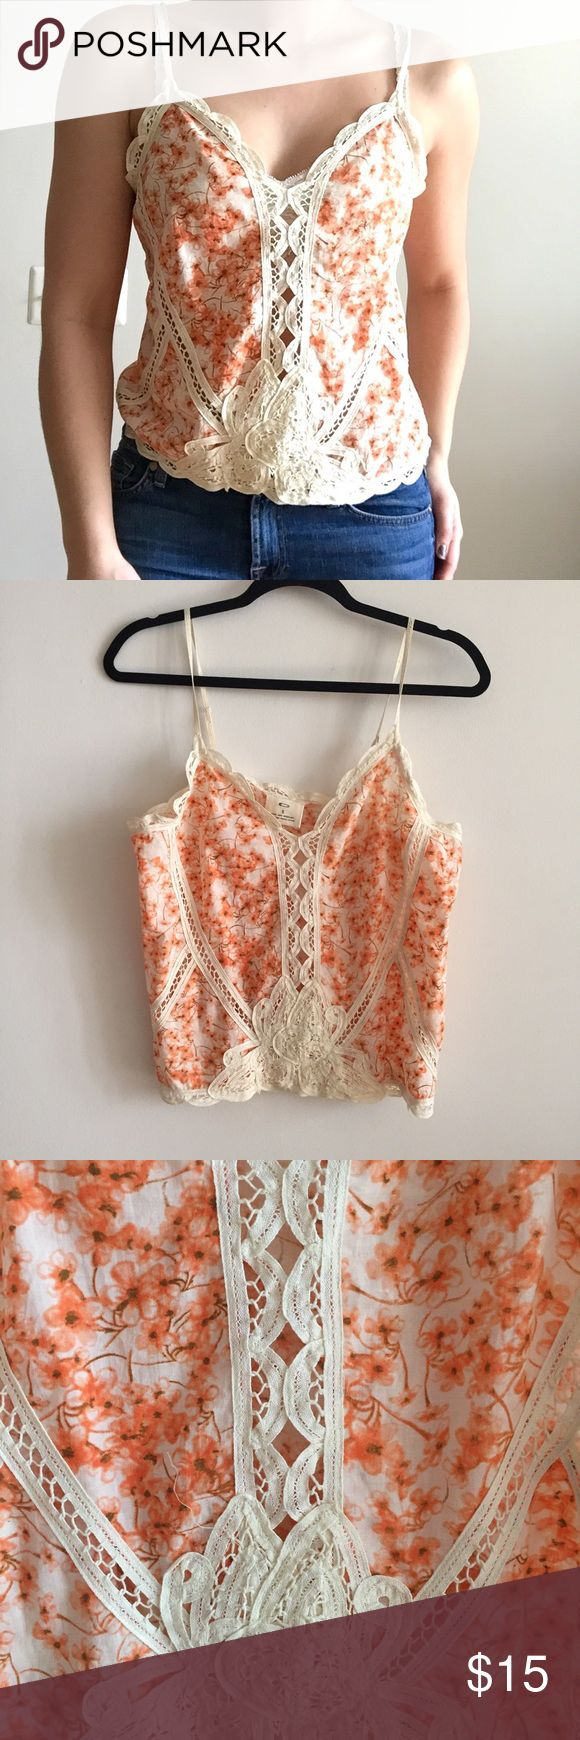 Urban Outfitters Orange Blossom Lace Tank A super cute Urban Outfitters Orange Blossom Lace Tank that is perfect for summer! It's so light and breezy, I've had it for years but it hasn't been worn in a while so it's time to let it go. It looks amazing with jean shorts and the cream lace provides the perfect girly accent. I typically wear a bralette under it to stay cool in the hot months. Urban Outfitters Tops Tank Tops